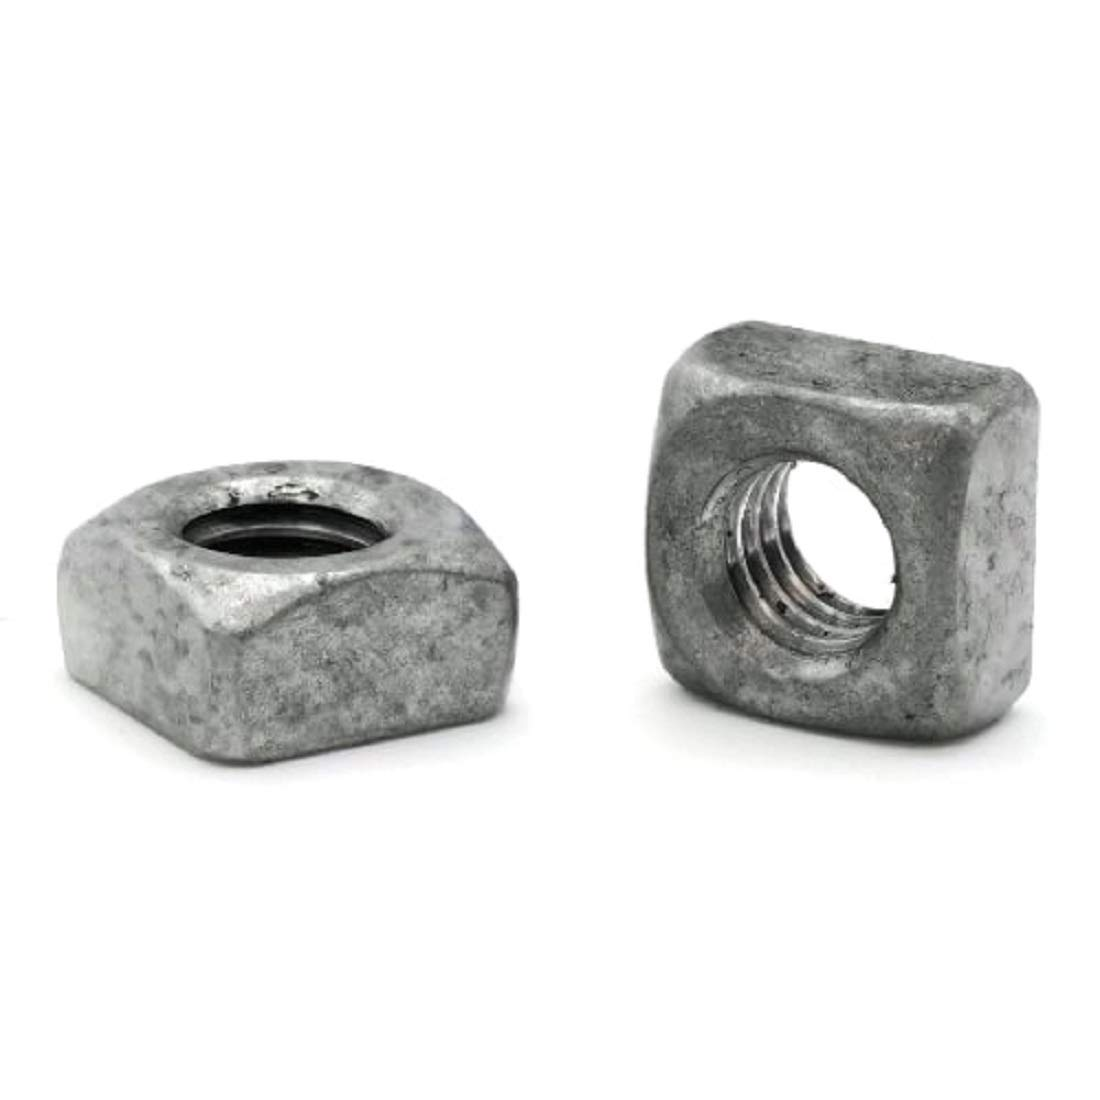 Square Nuts Hot Dipped Galvanized Grade 2-3 UNC OFFicial Max 87% OFF mail order 8